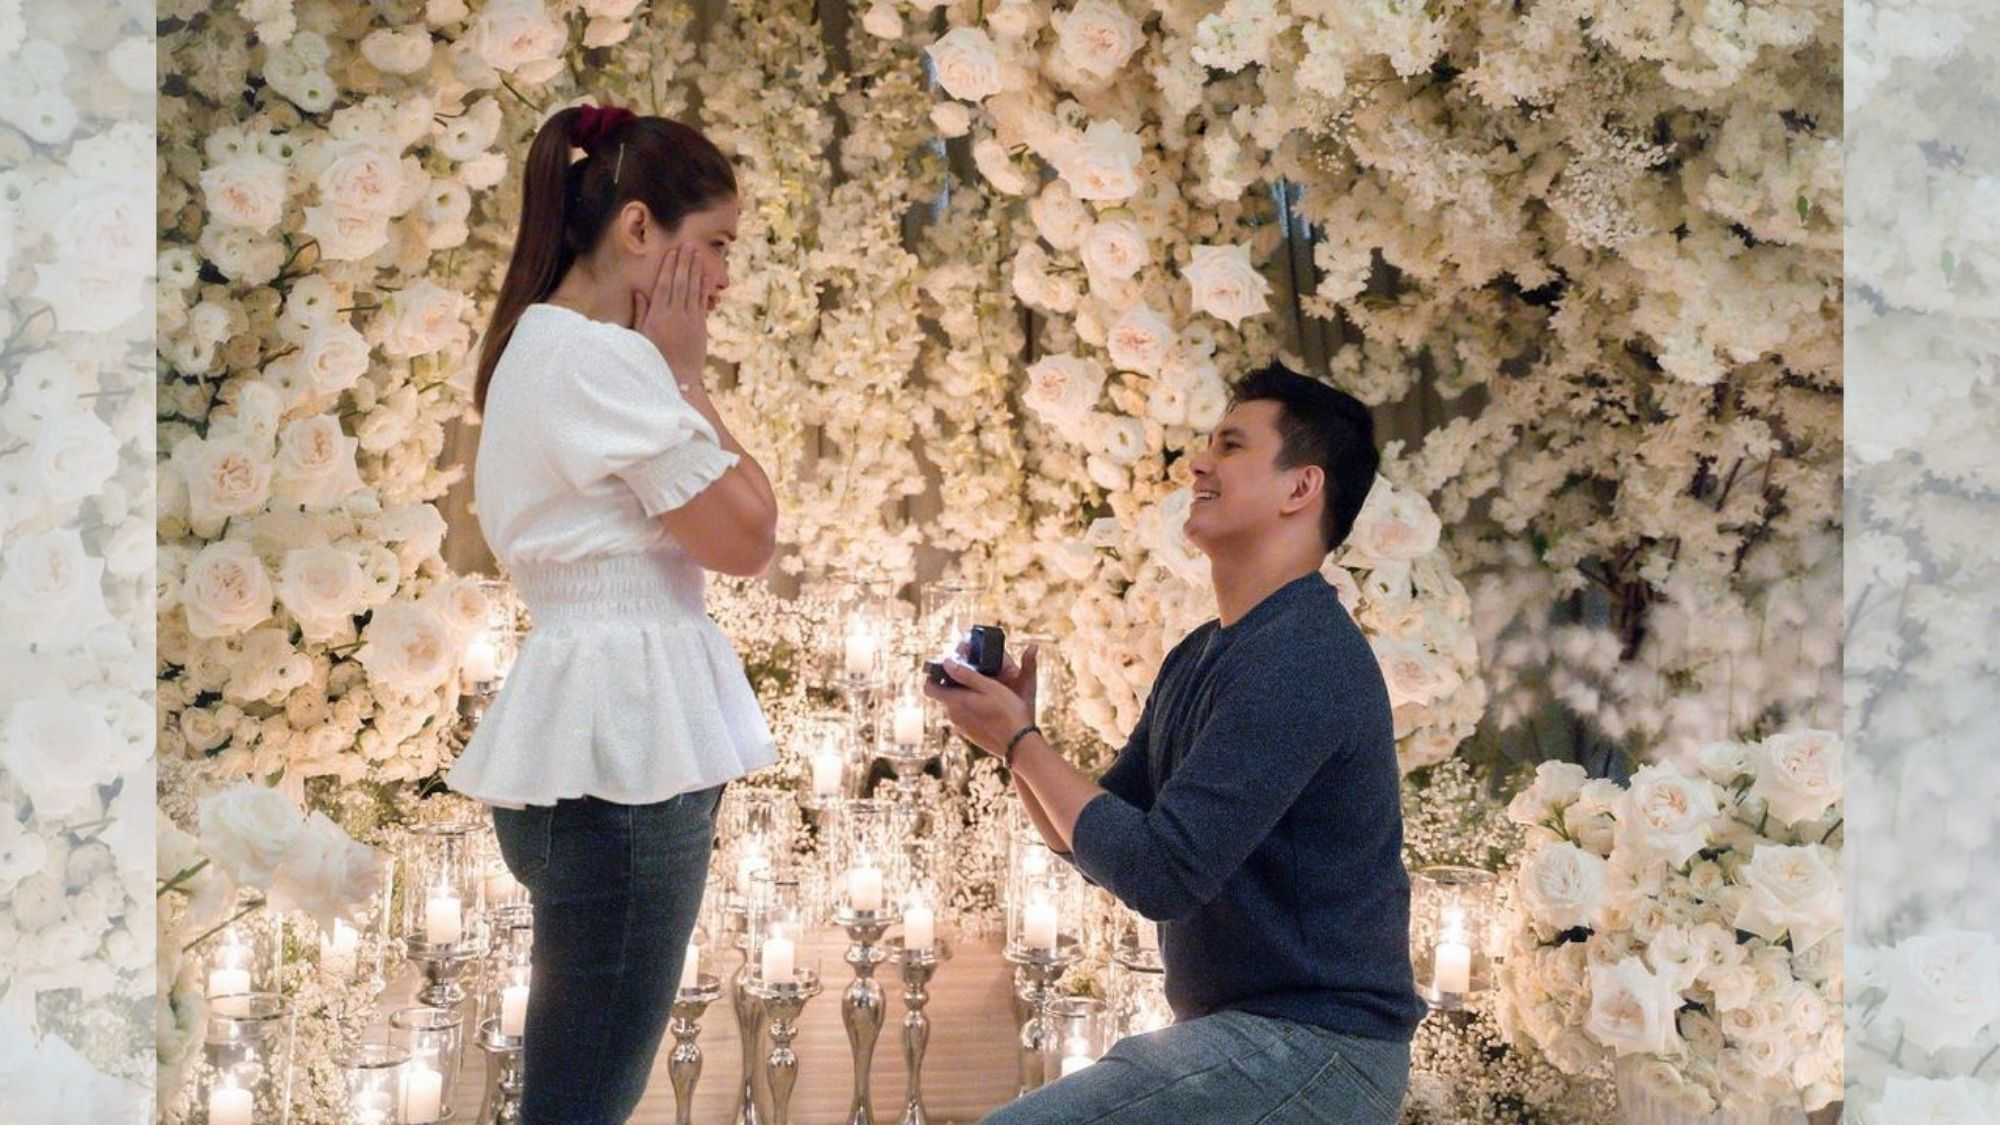 Carla Abellana and Tom Rodriguez are altar bound